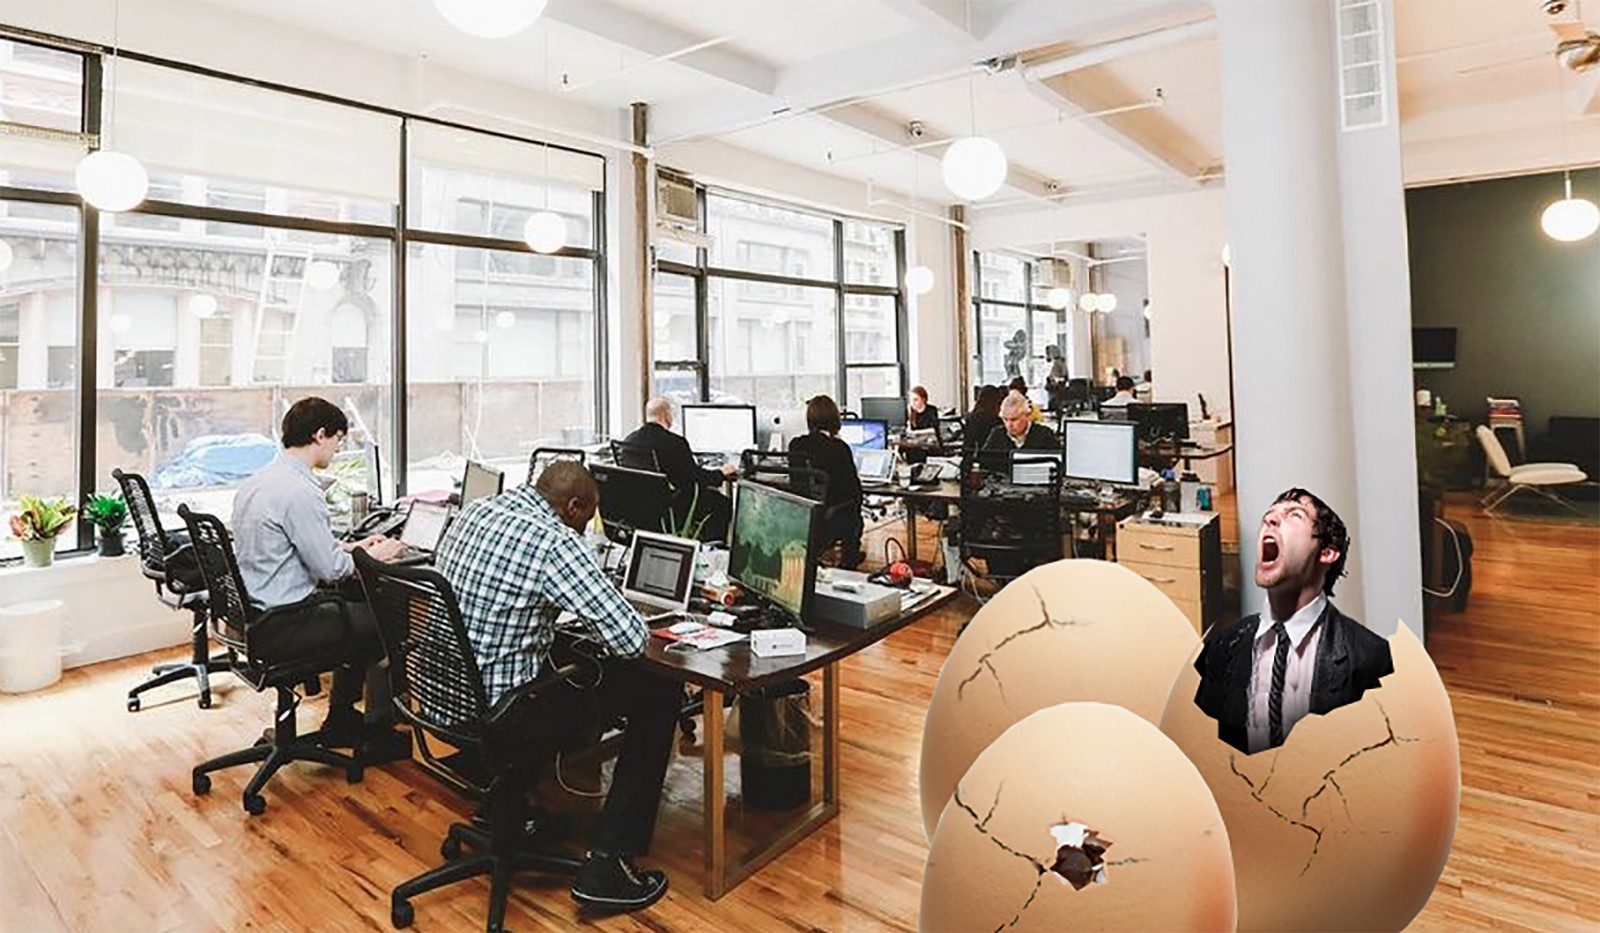 images The hope of the incubator is to provide more space for NYC-based companies to grow in the city. A few months in, the startups are still getting settled in, but already JLabs has cemented its place in NYCs biotech and health-tech scene